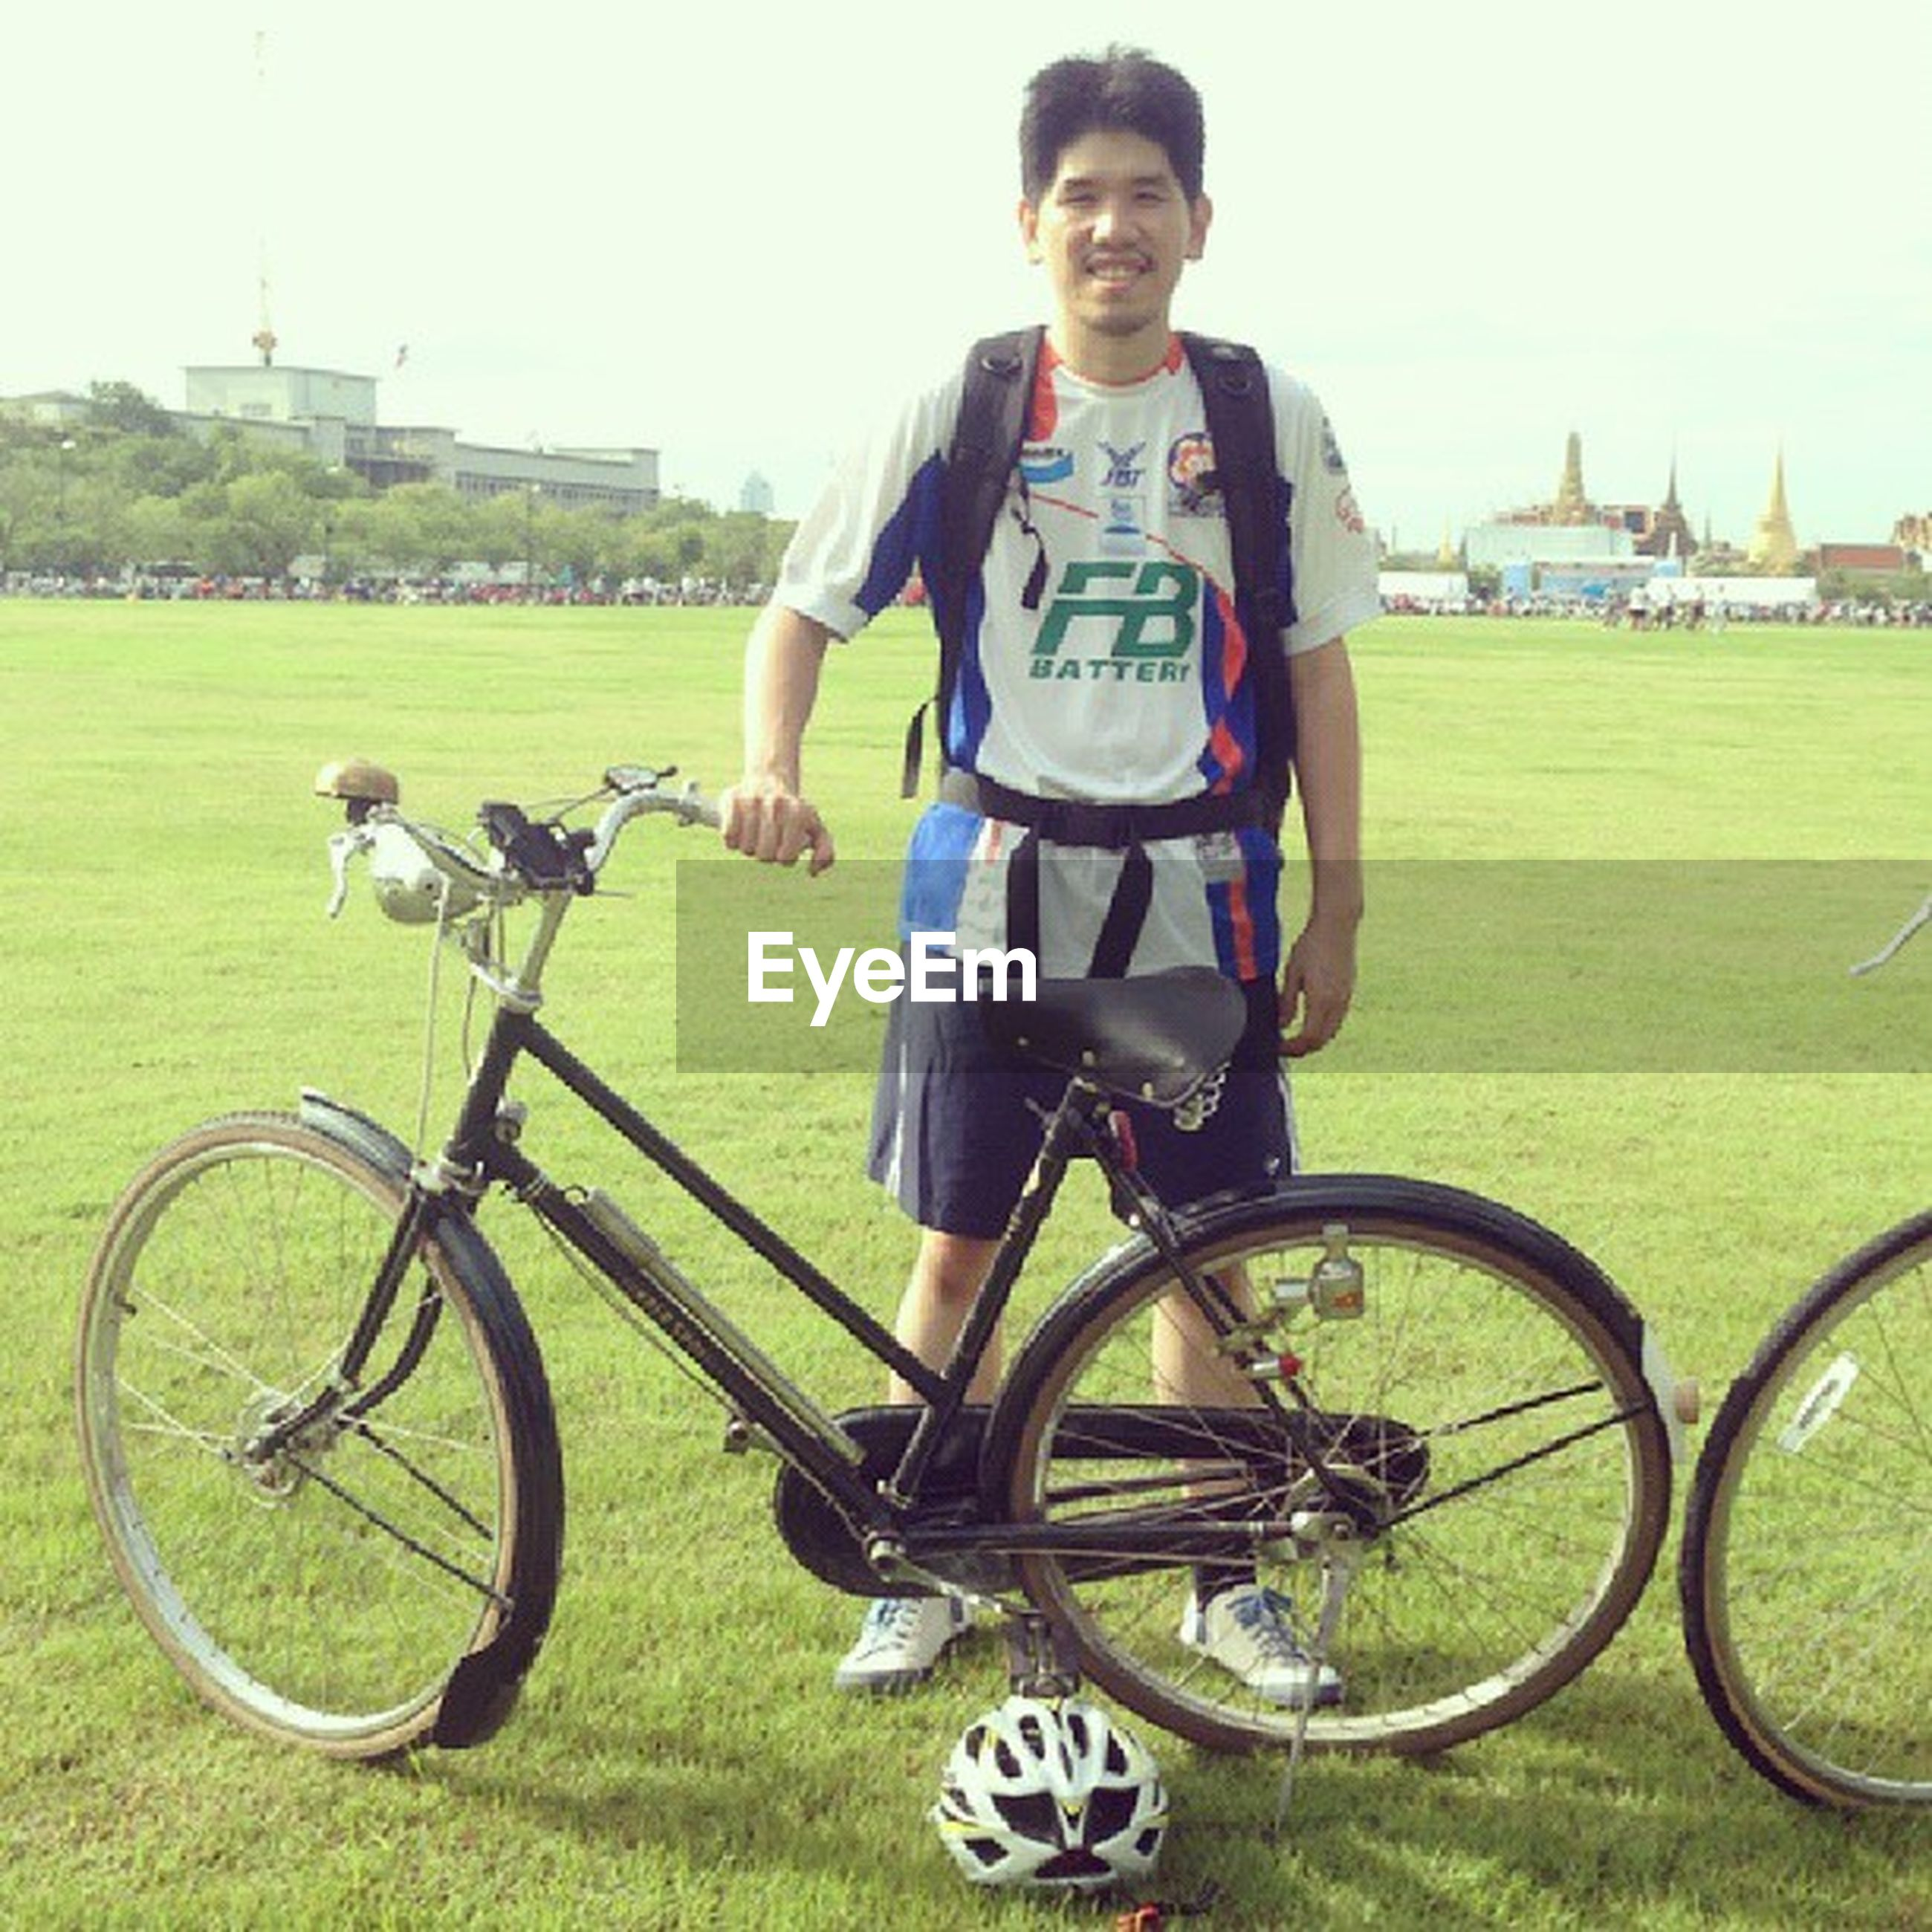 bicycle, grass, person, land vehicle, lifestyles, mode of transport, full length, leisure activity, transportation, casual clothing, looking at camera, portrait, riding, childhood, smiling, young adult, front view, elementary age